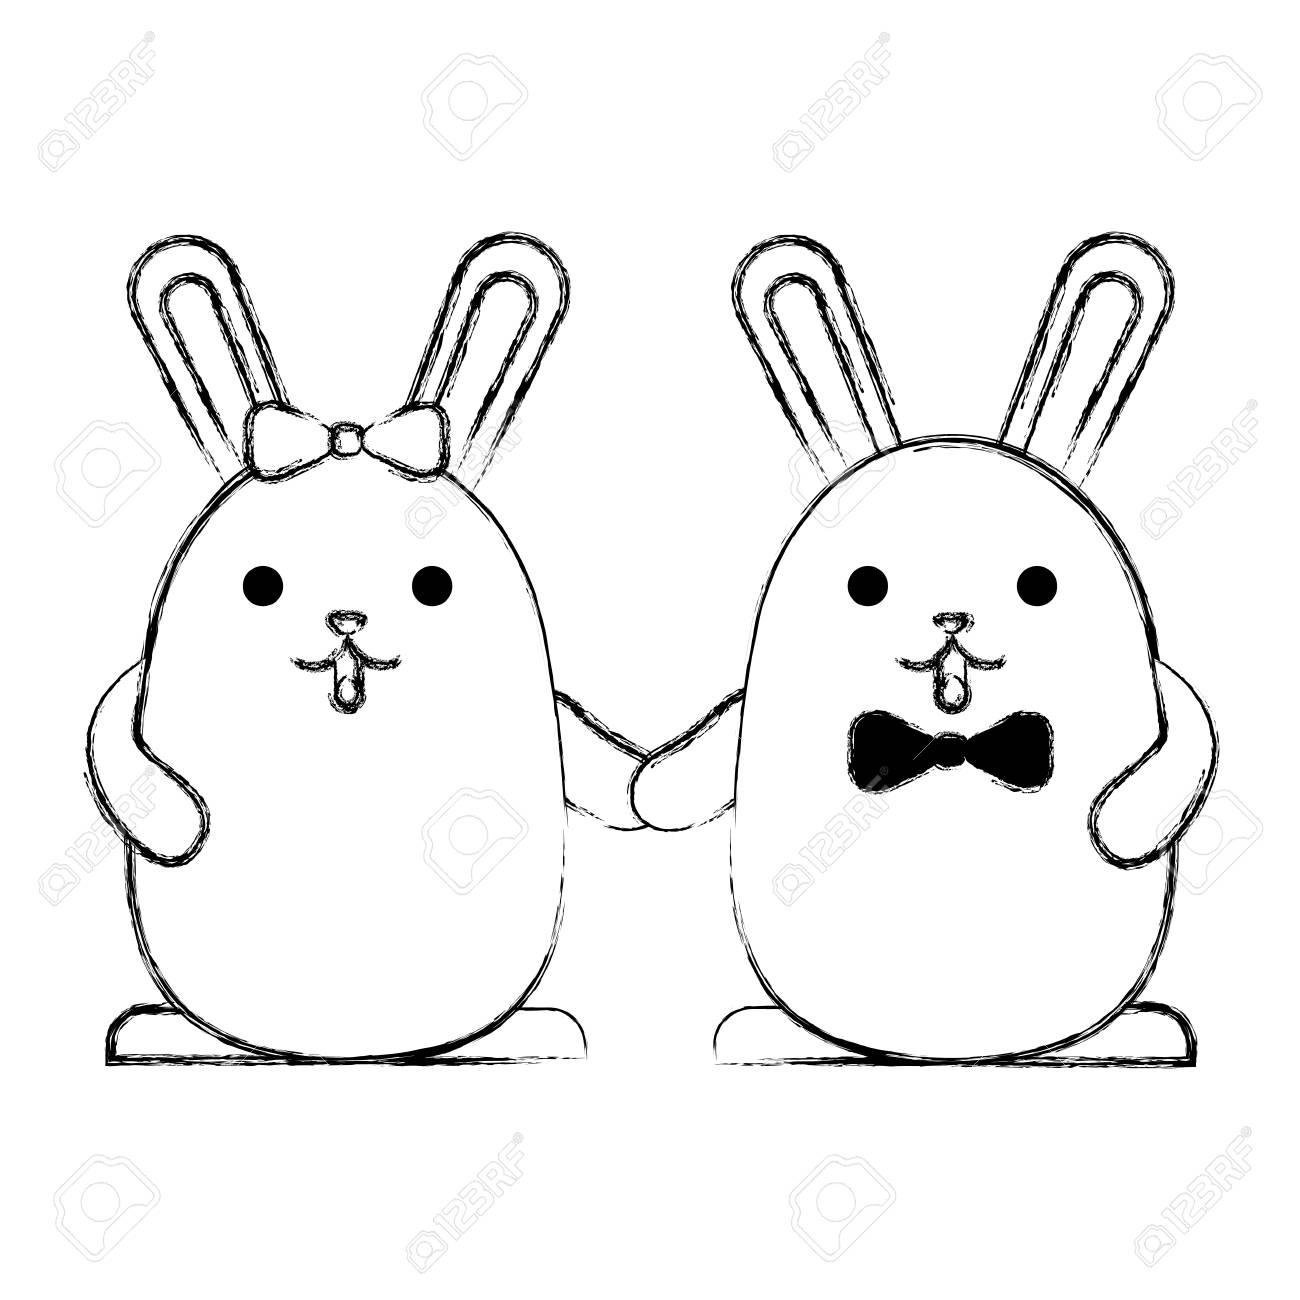 Cute Couple Rabbits Holding Hands Vector Illustration Sketch